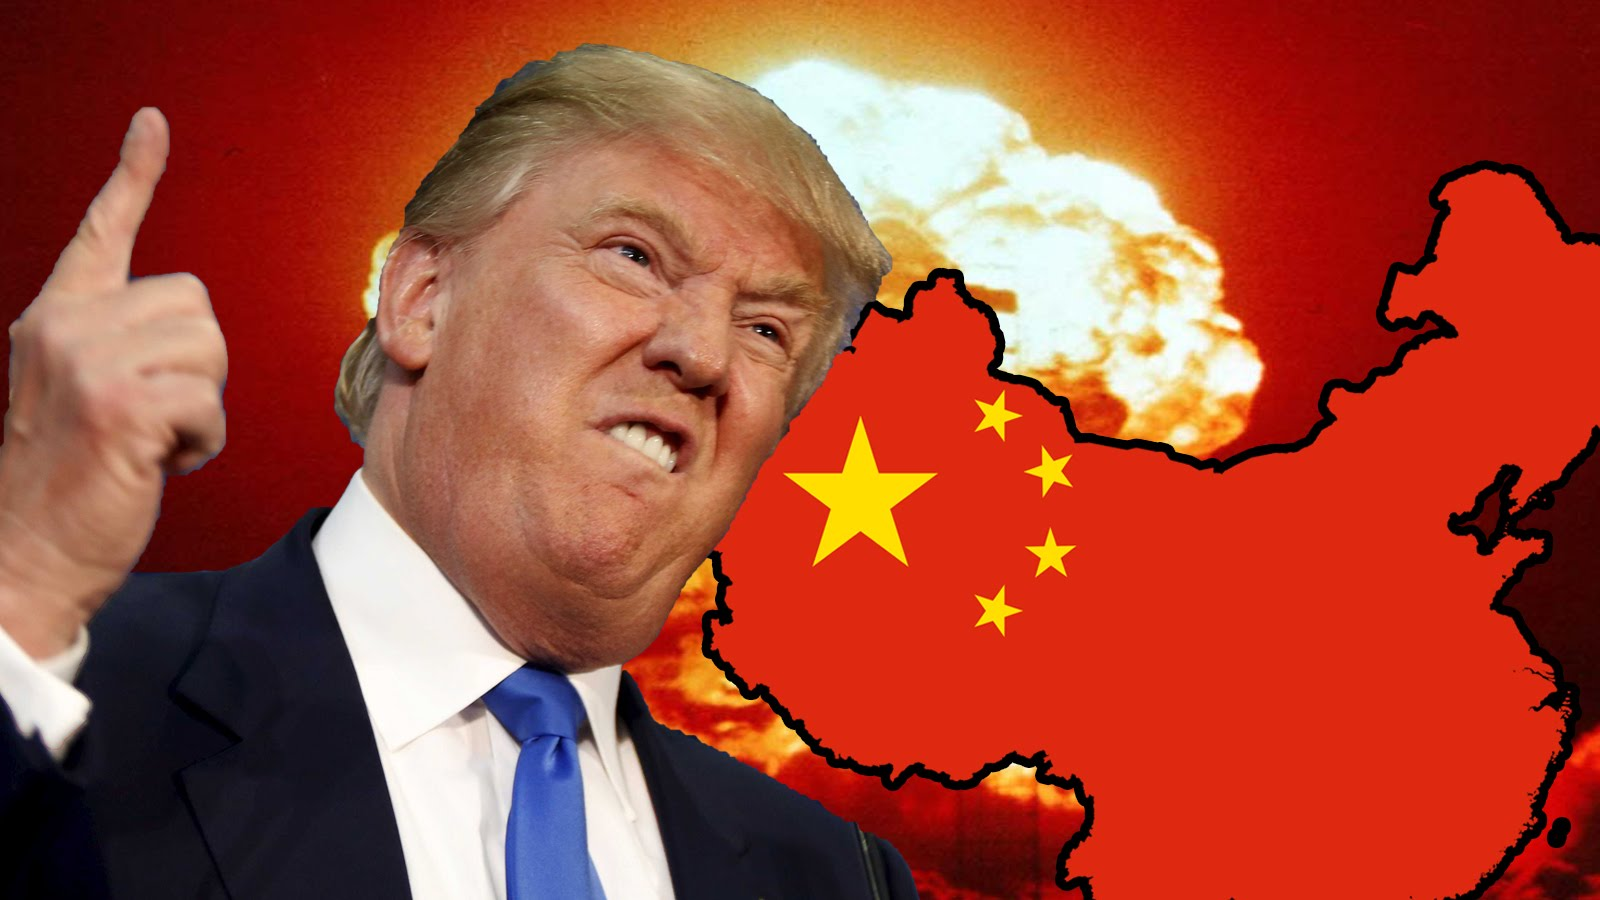 China to become world leader if Donald Trump steps down